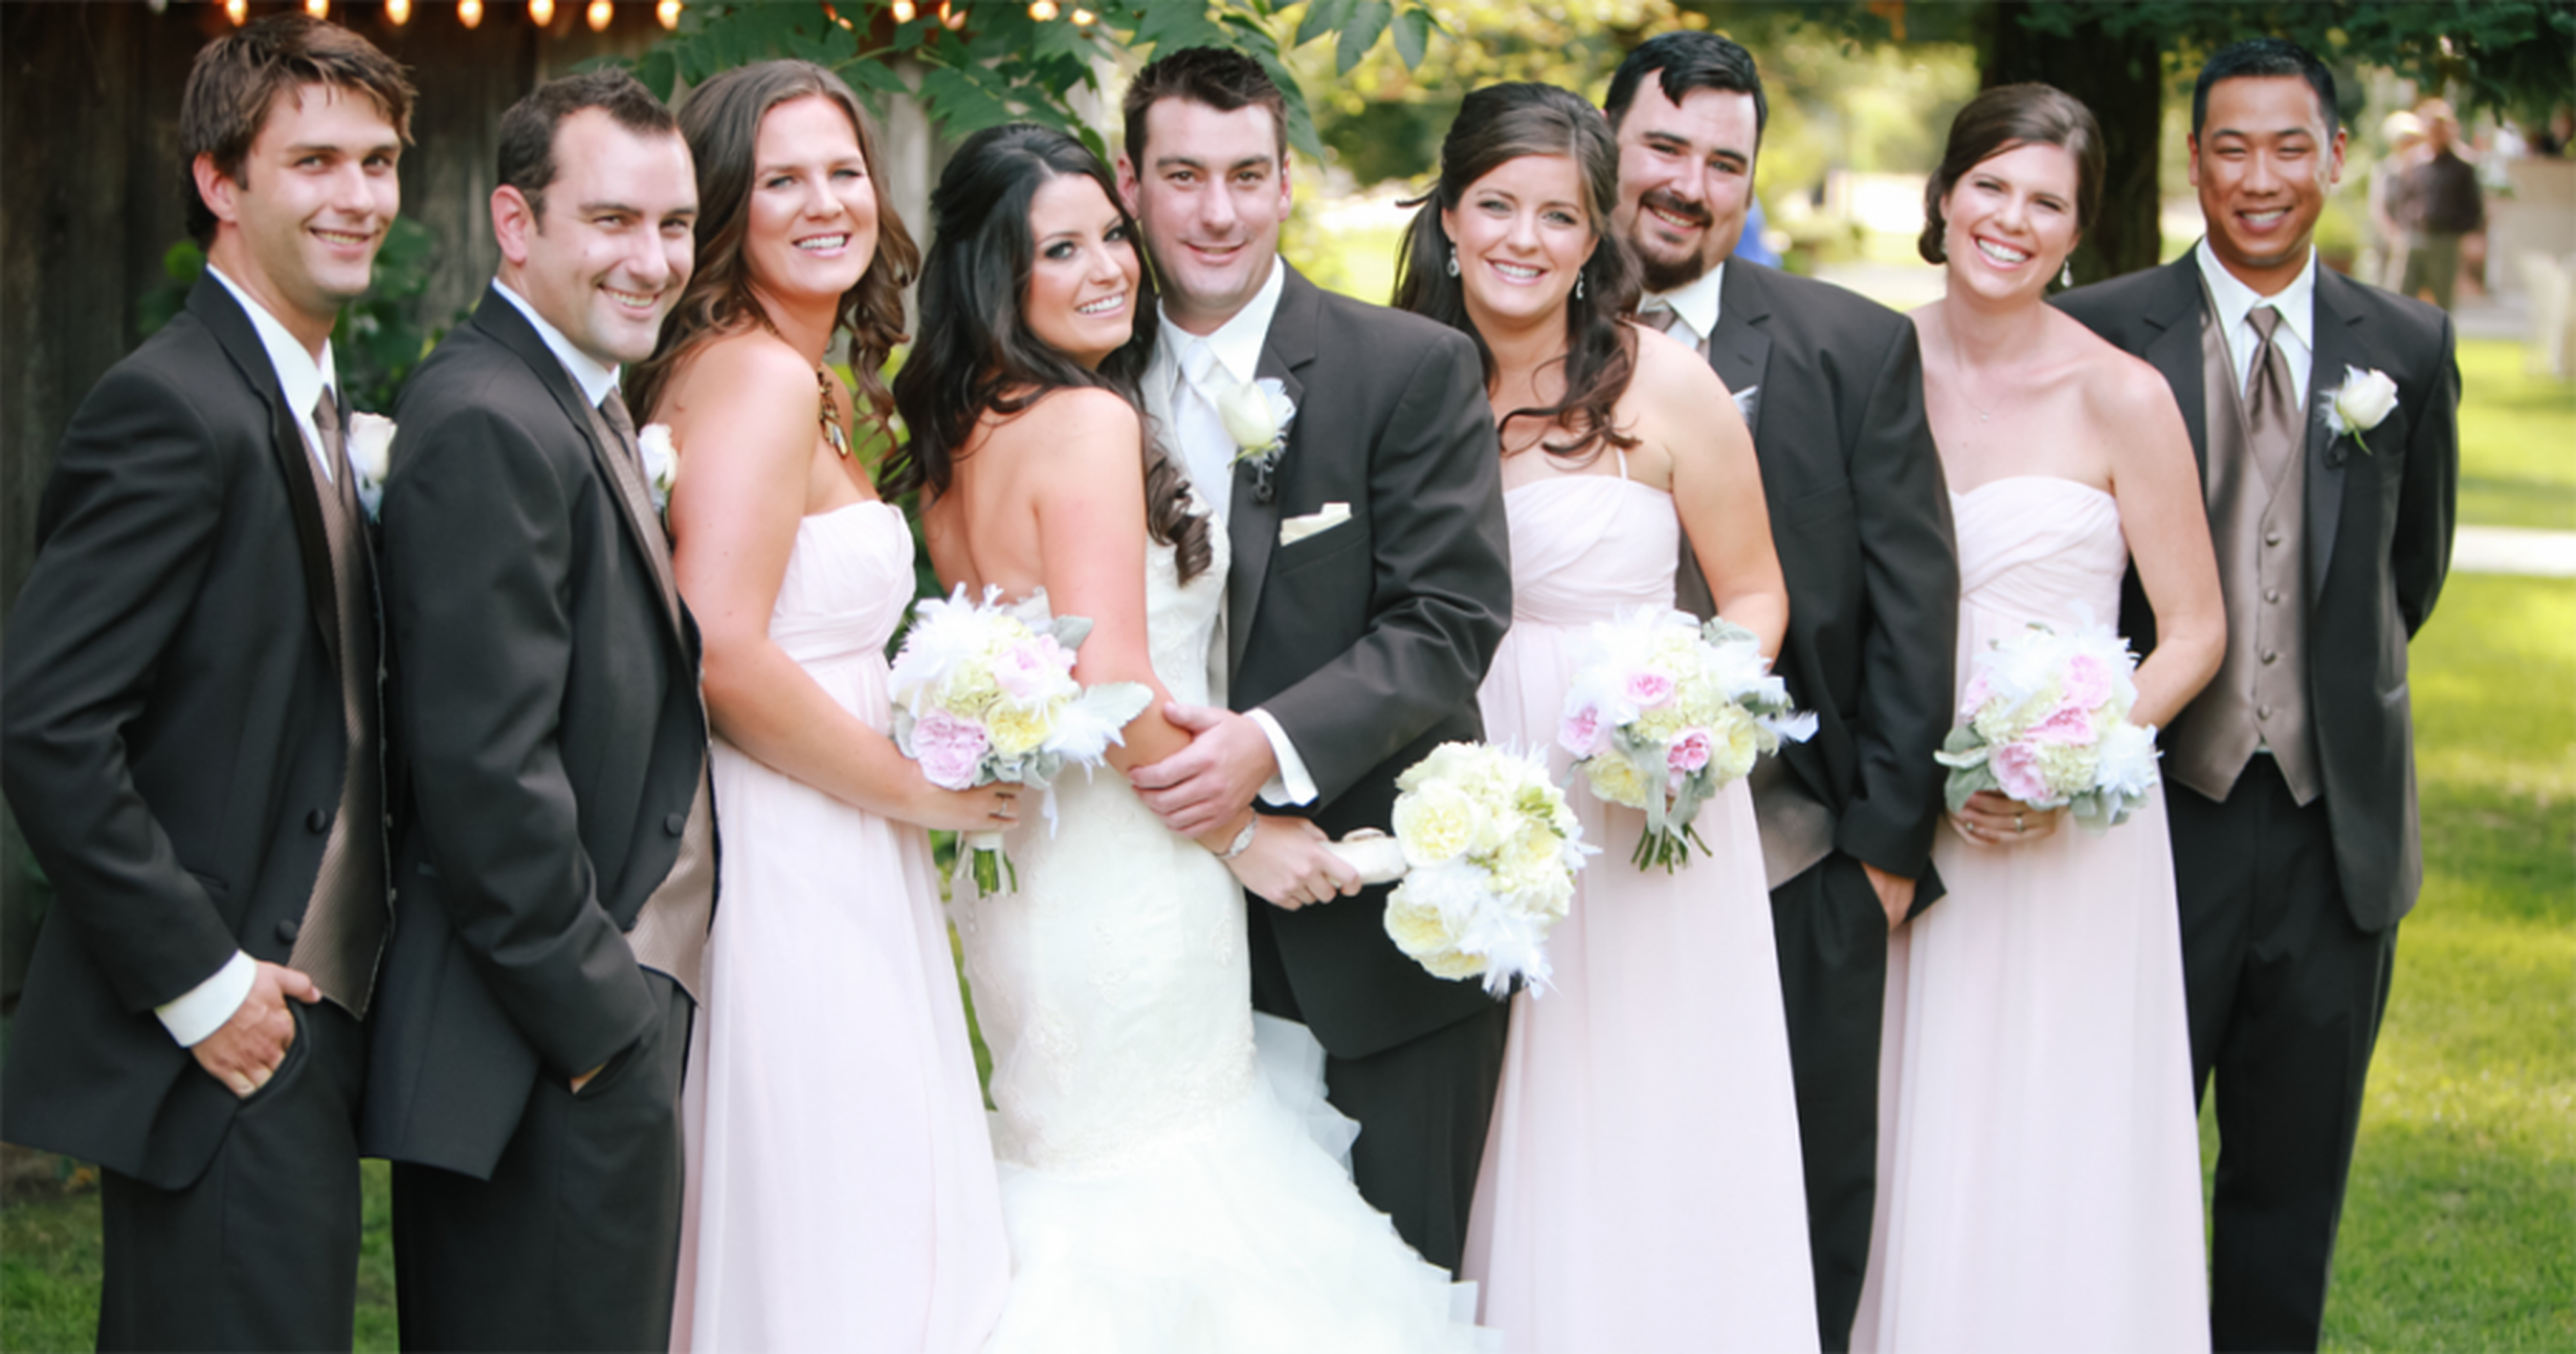 Wedding Photos | Toms River Tuxedo | Formalwear | NJ Tuxedos